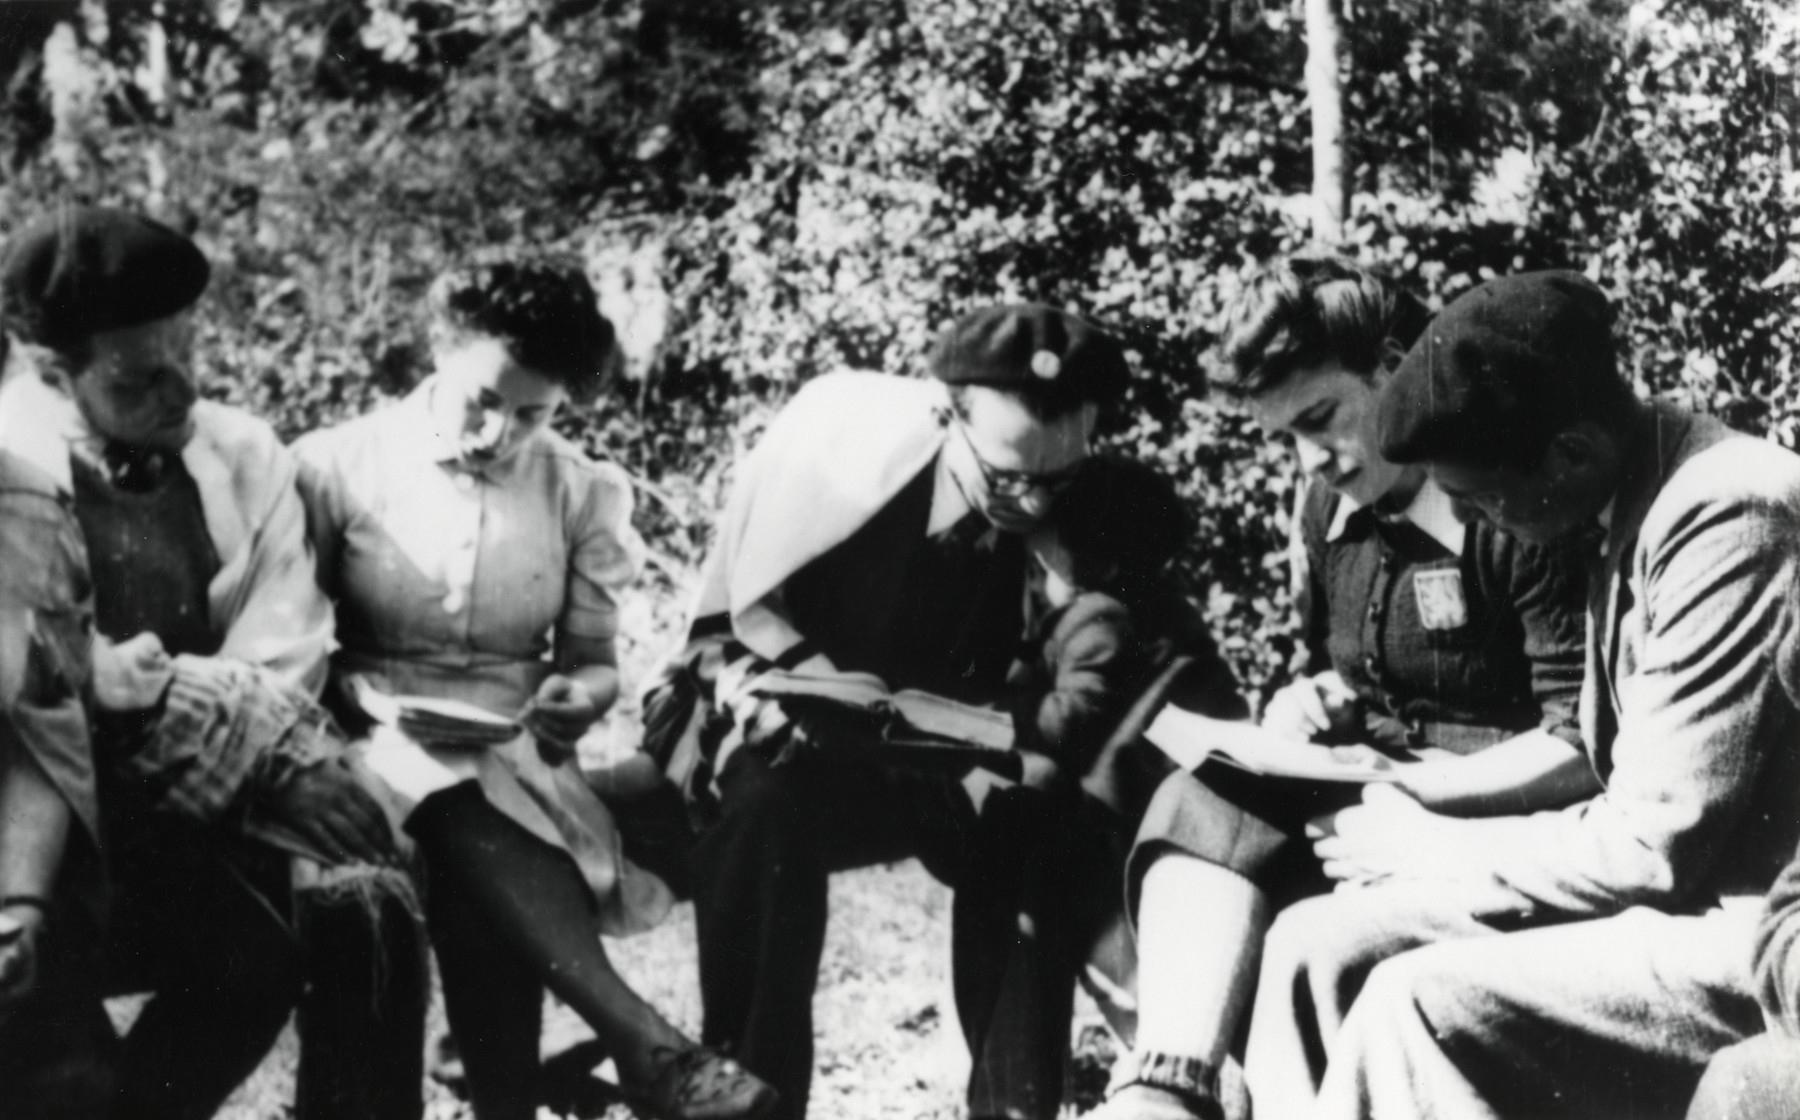 A group of five persons studies outdoors.   Pictured in the center is Noemi Cassuto, aged 3 or 4. Her father, Leo Cohn, in a prayer shawl, bends down towards her.